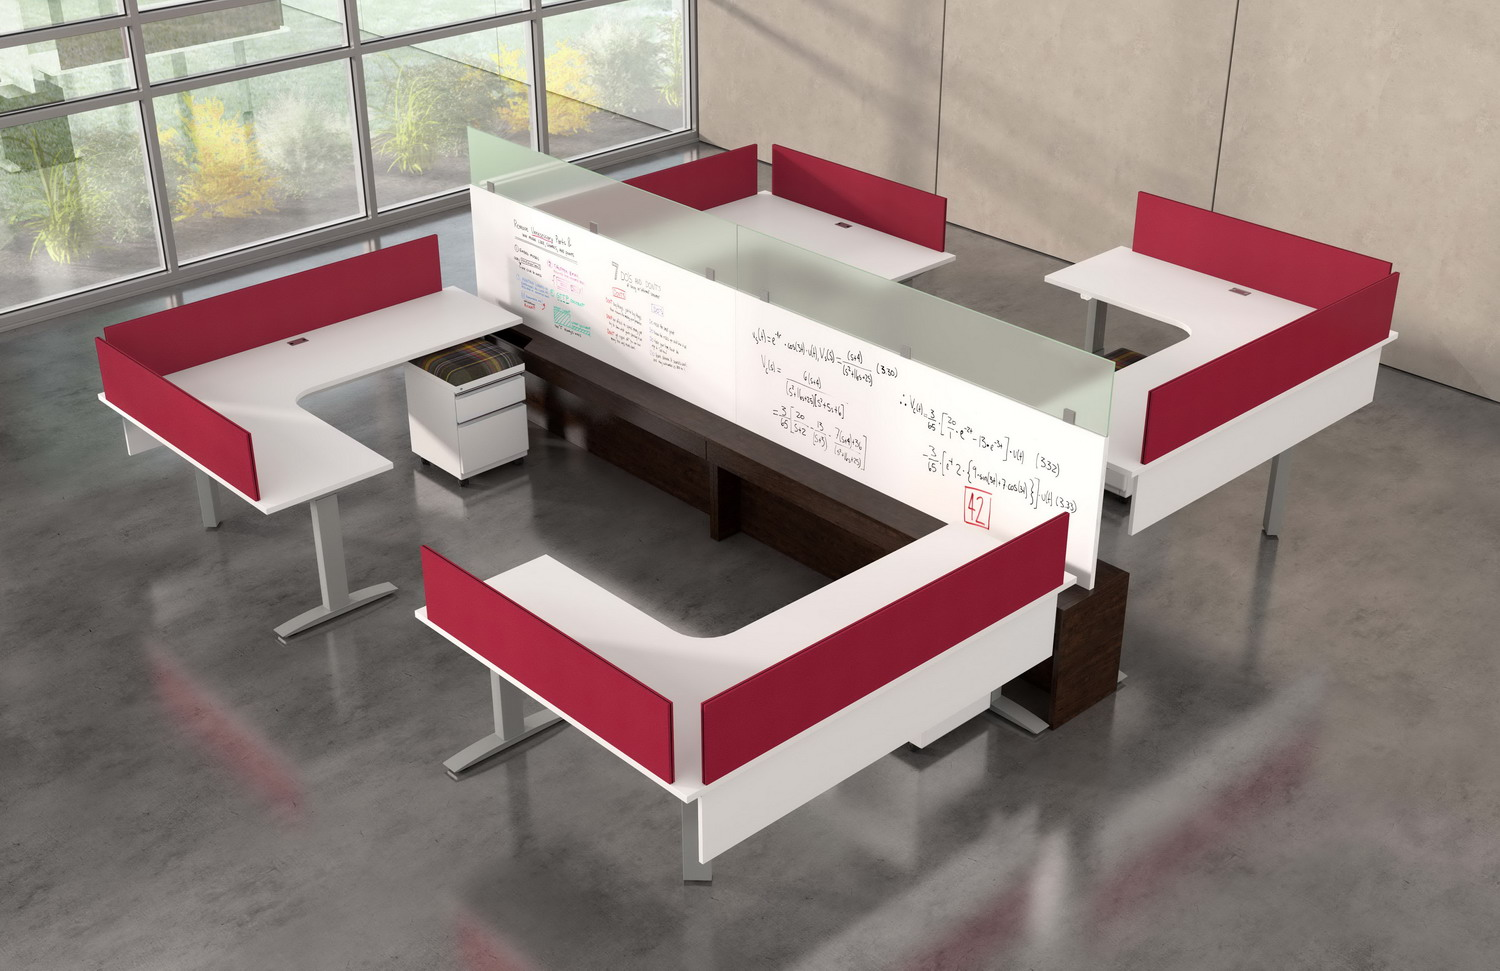 Contract Furniture Rendering of a group of 4 workspaces with a dry erase marker divider.